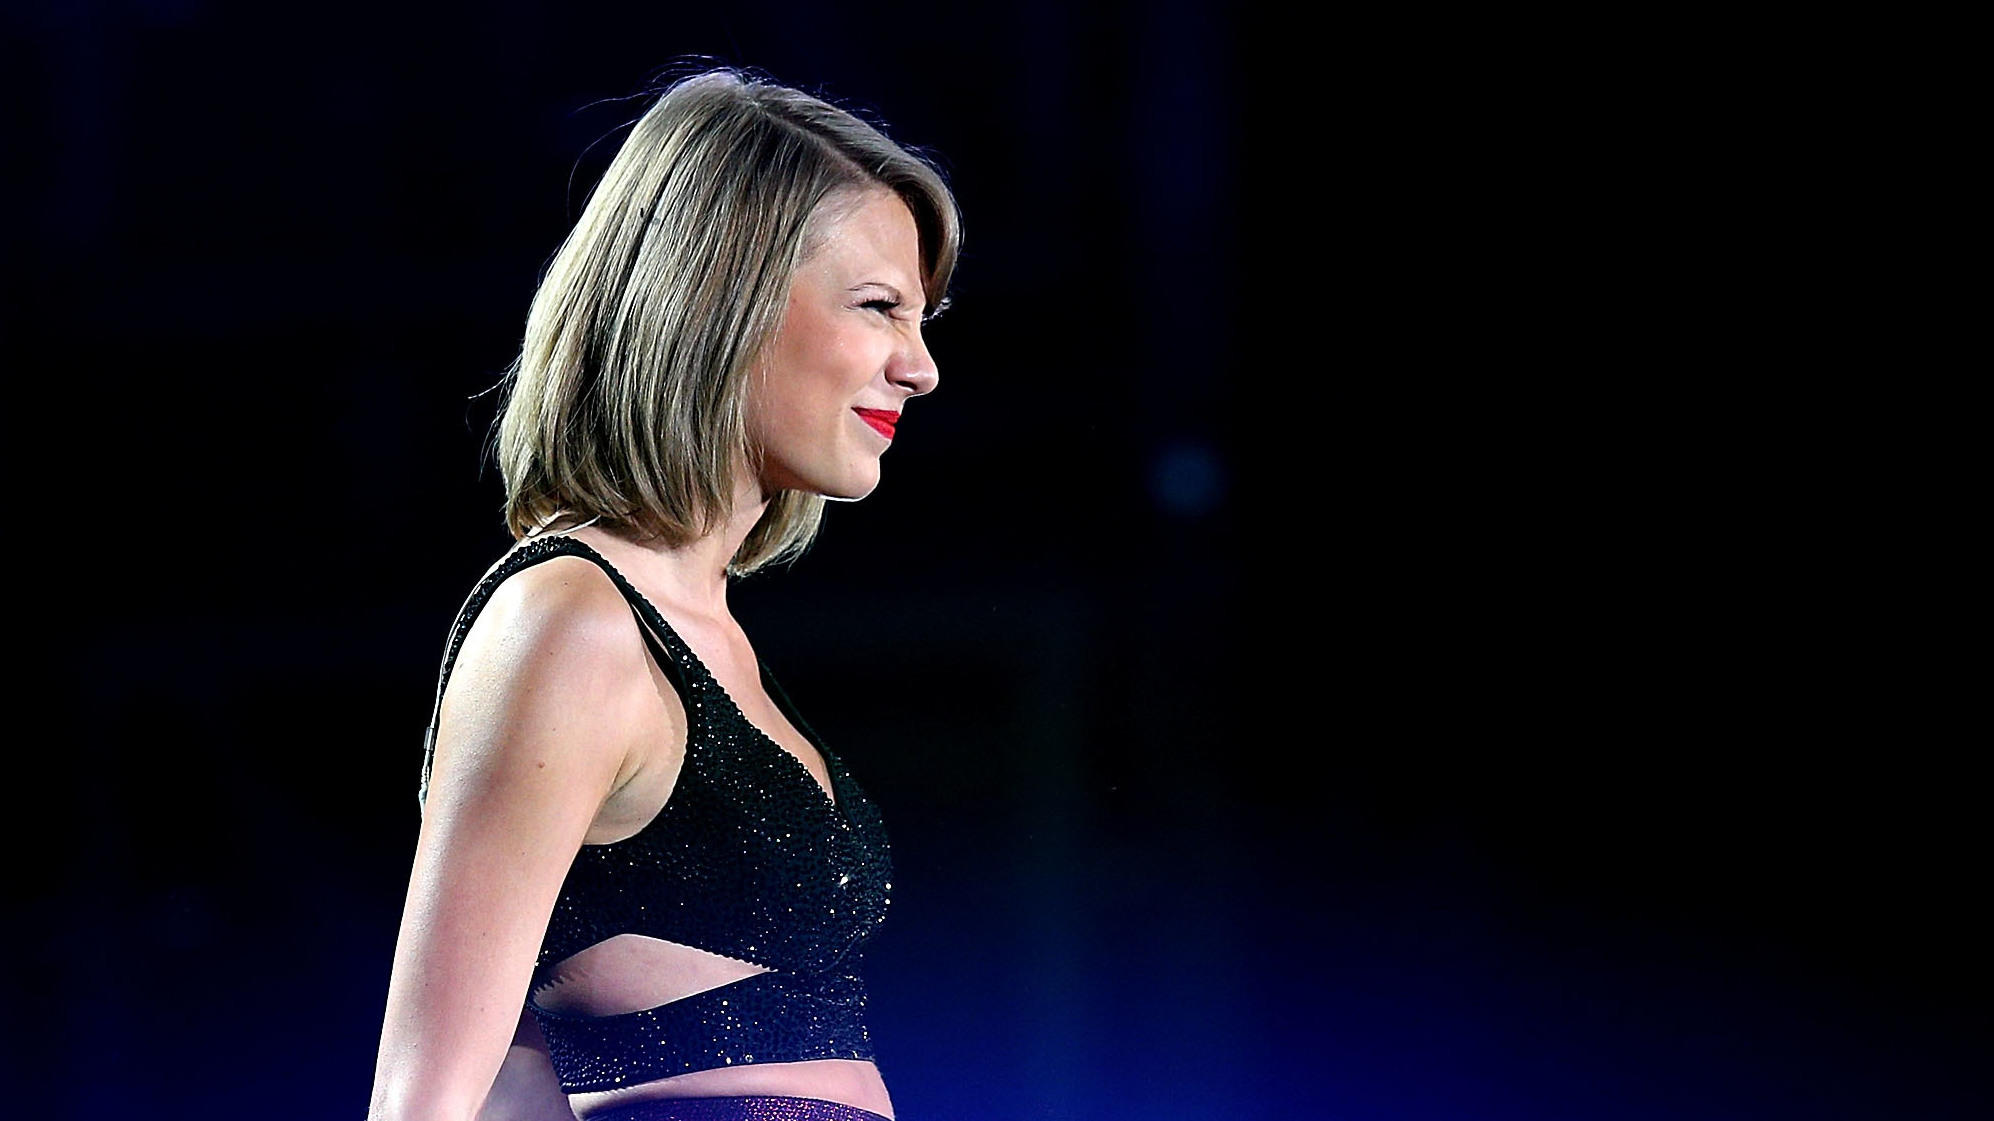 Taylor Swift To Release Entire Discography To Spotify